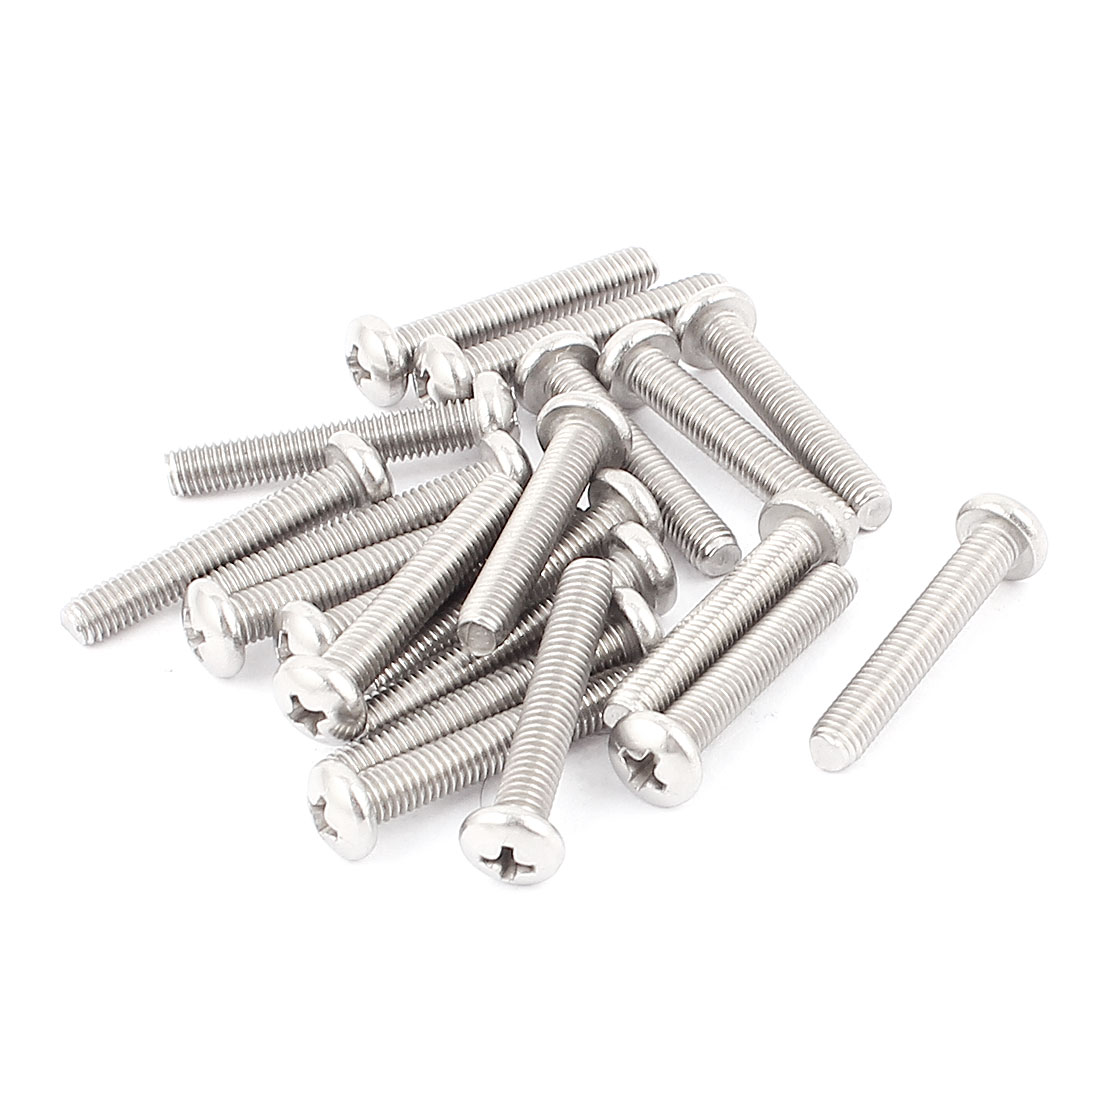 M5x30mm 304 Stainless Steel Round-Head Phillips Drive Screws 20pcs